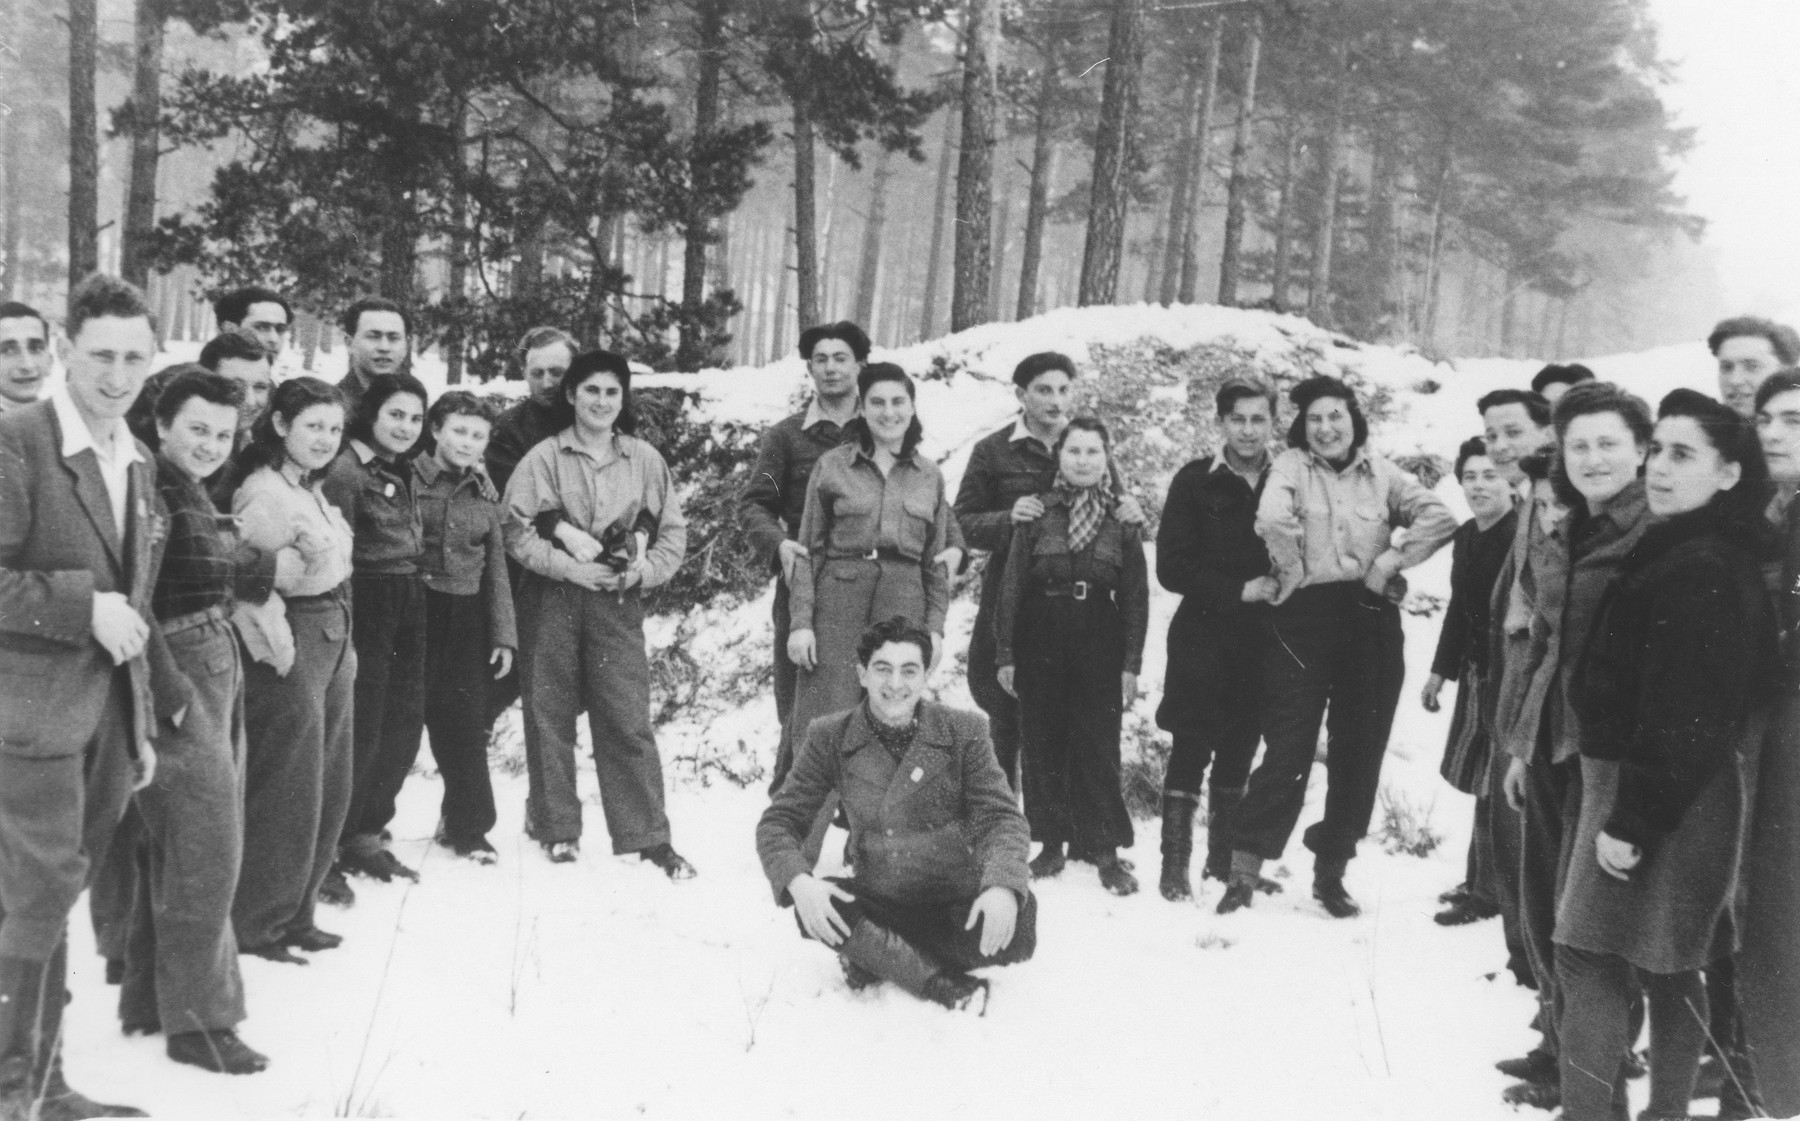 Shmuel Rakowski (seated) poses with a group of Jewish DPs who he escorted out of Poland on a Bricha route.